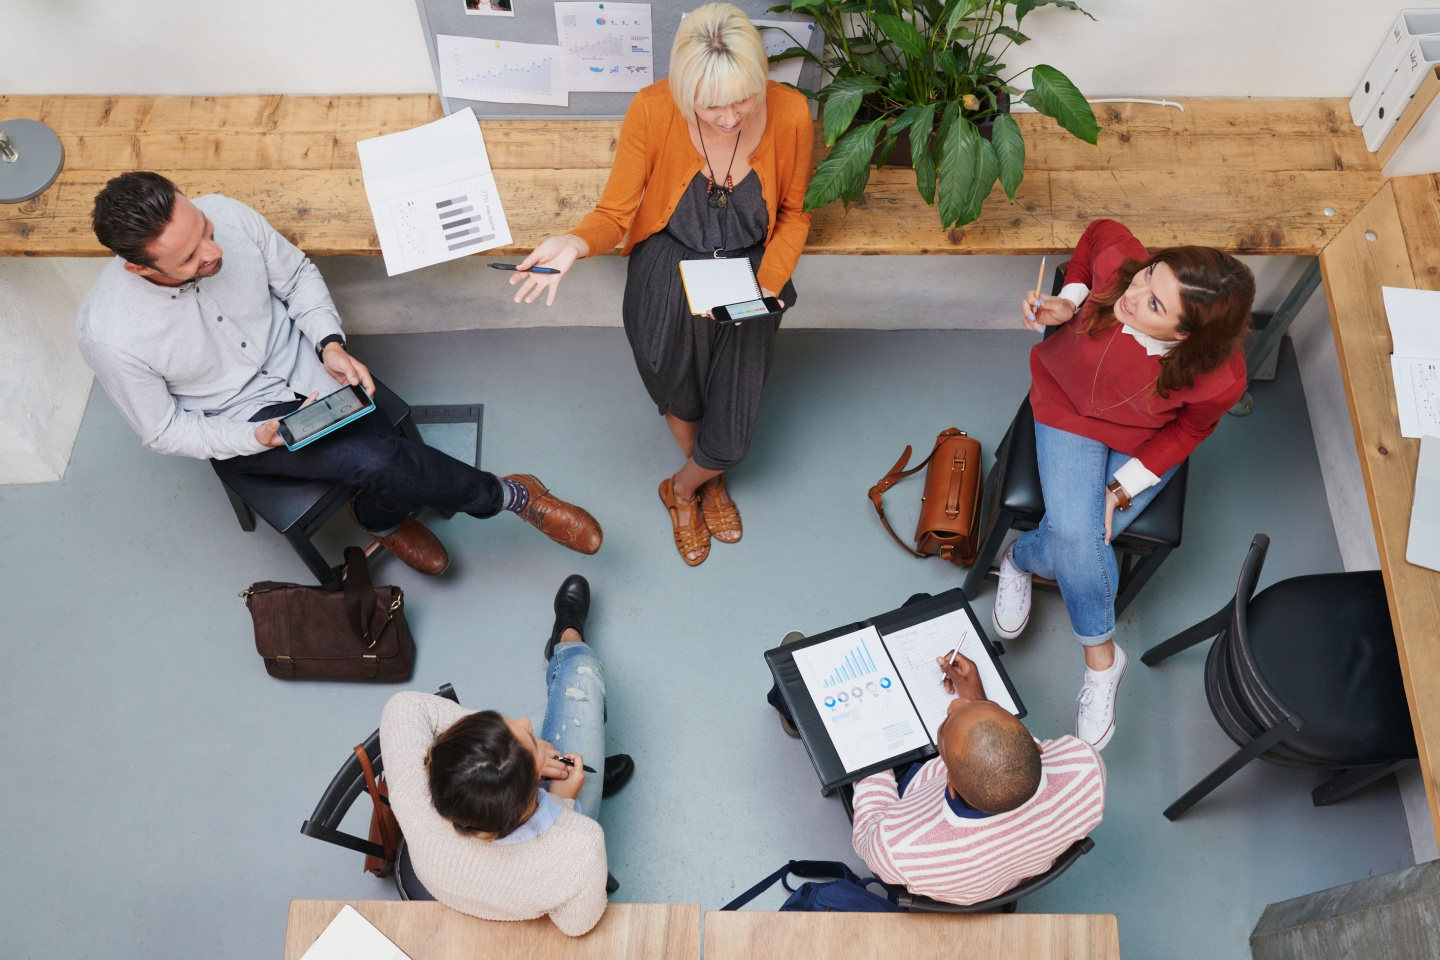 Your Guide to Planning a Sales Kick-off with Lasting Impact